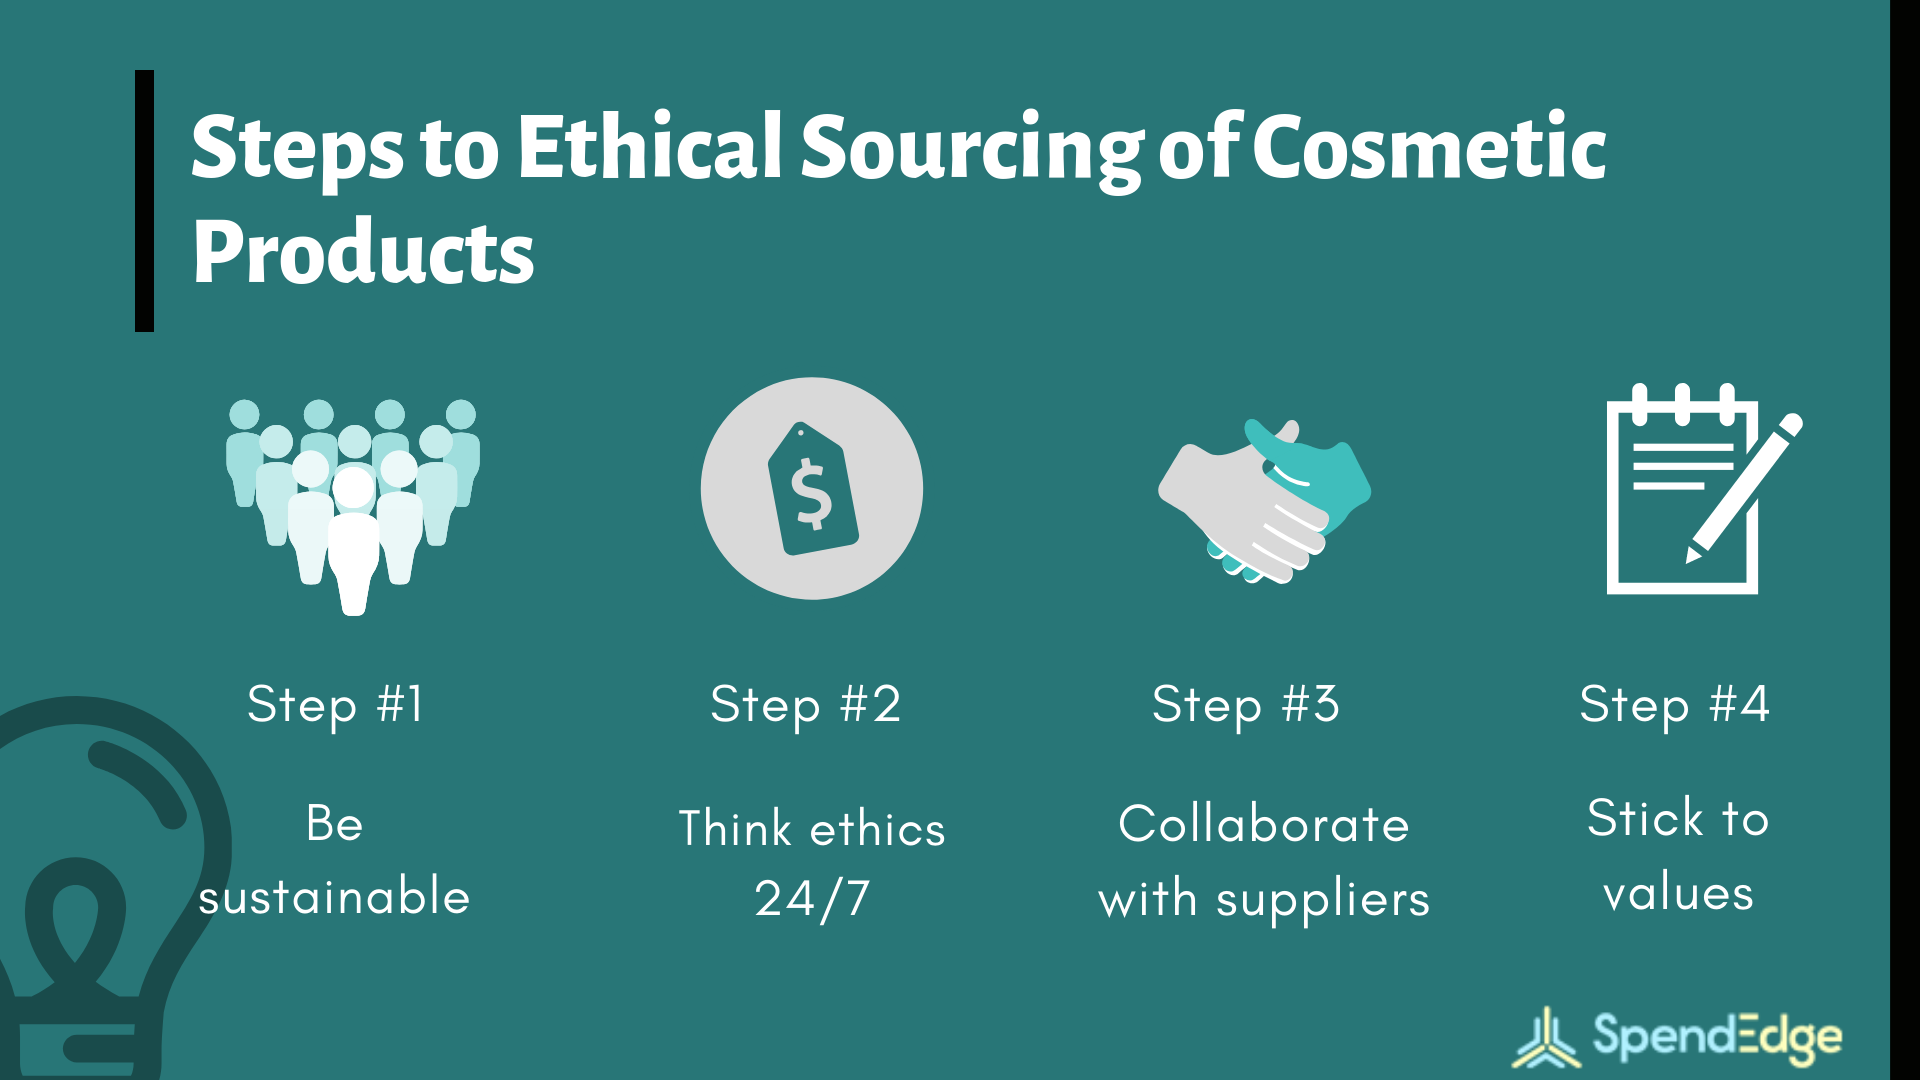 Steps to Ethical Sourcing